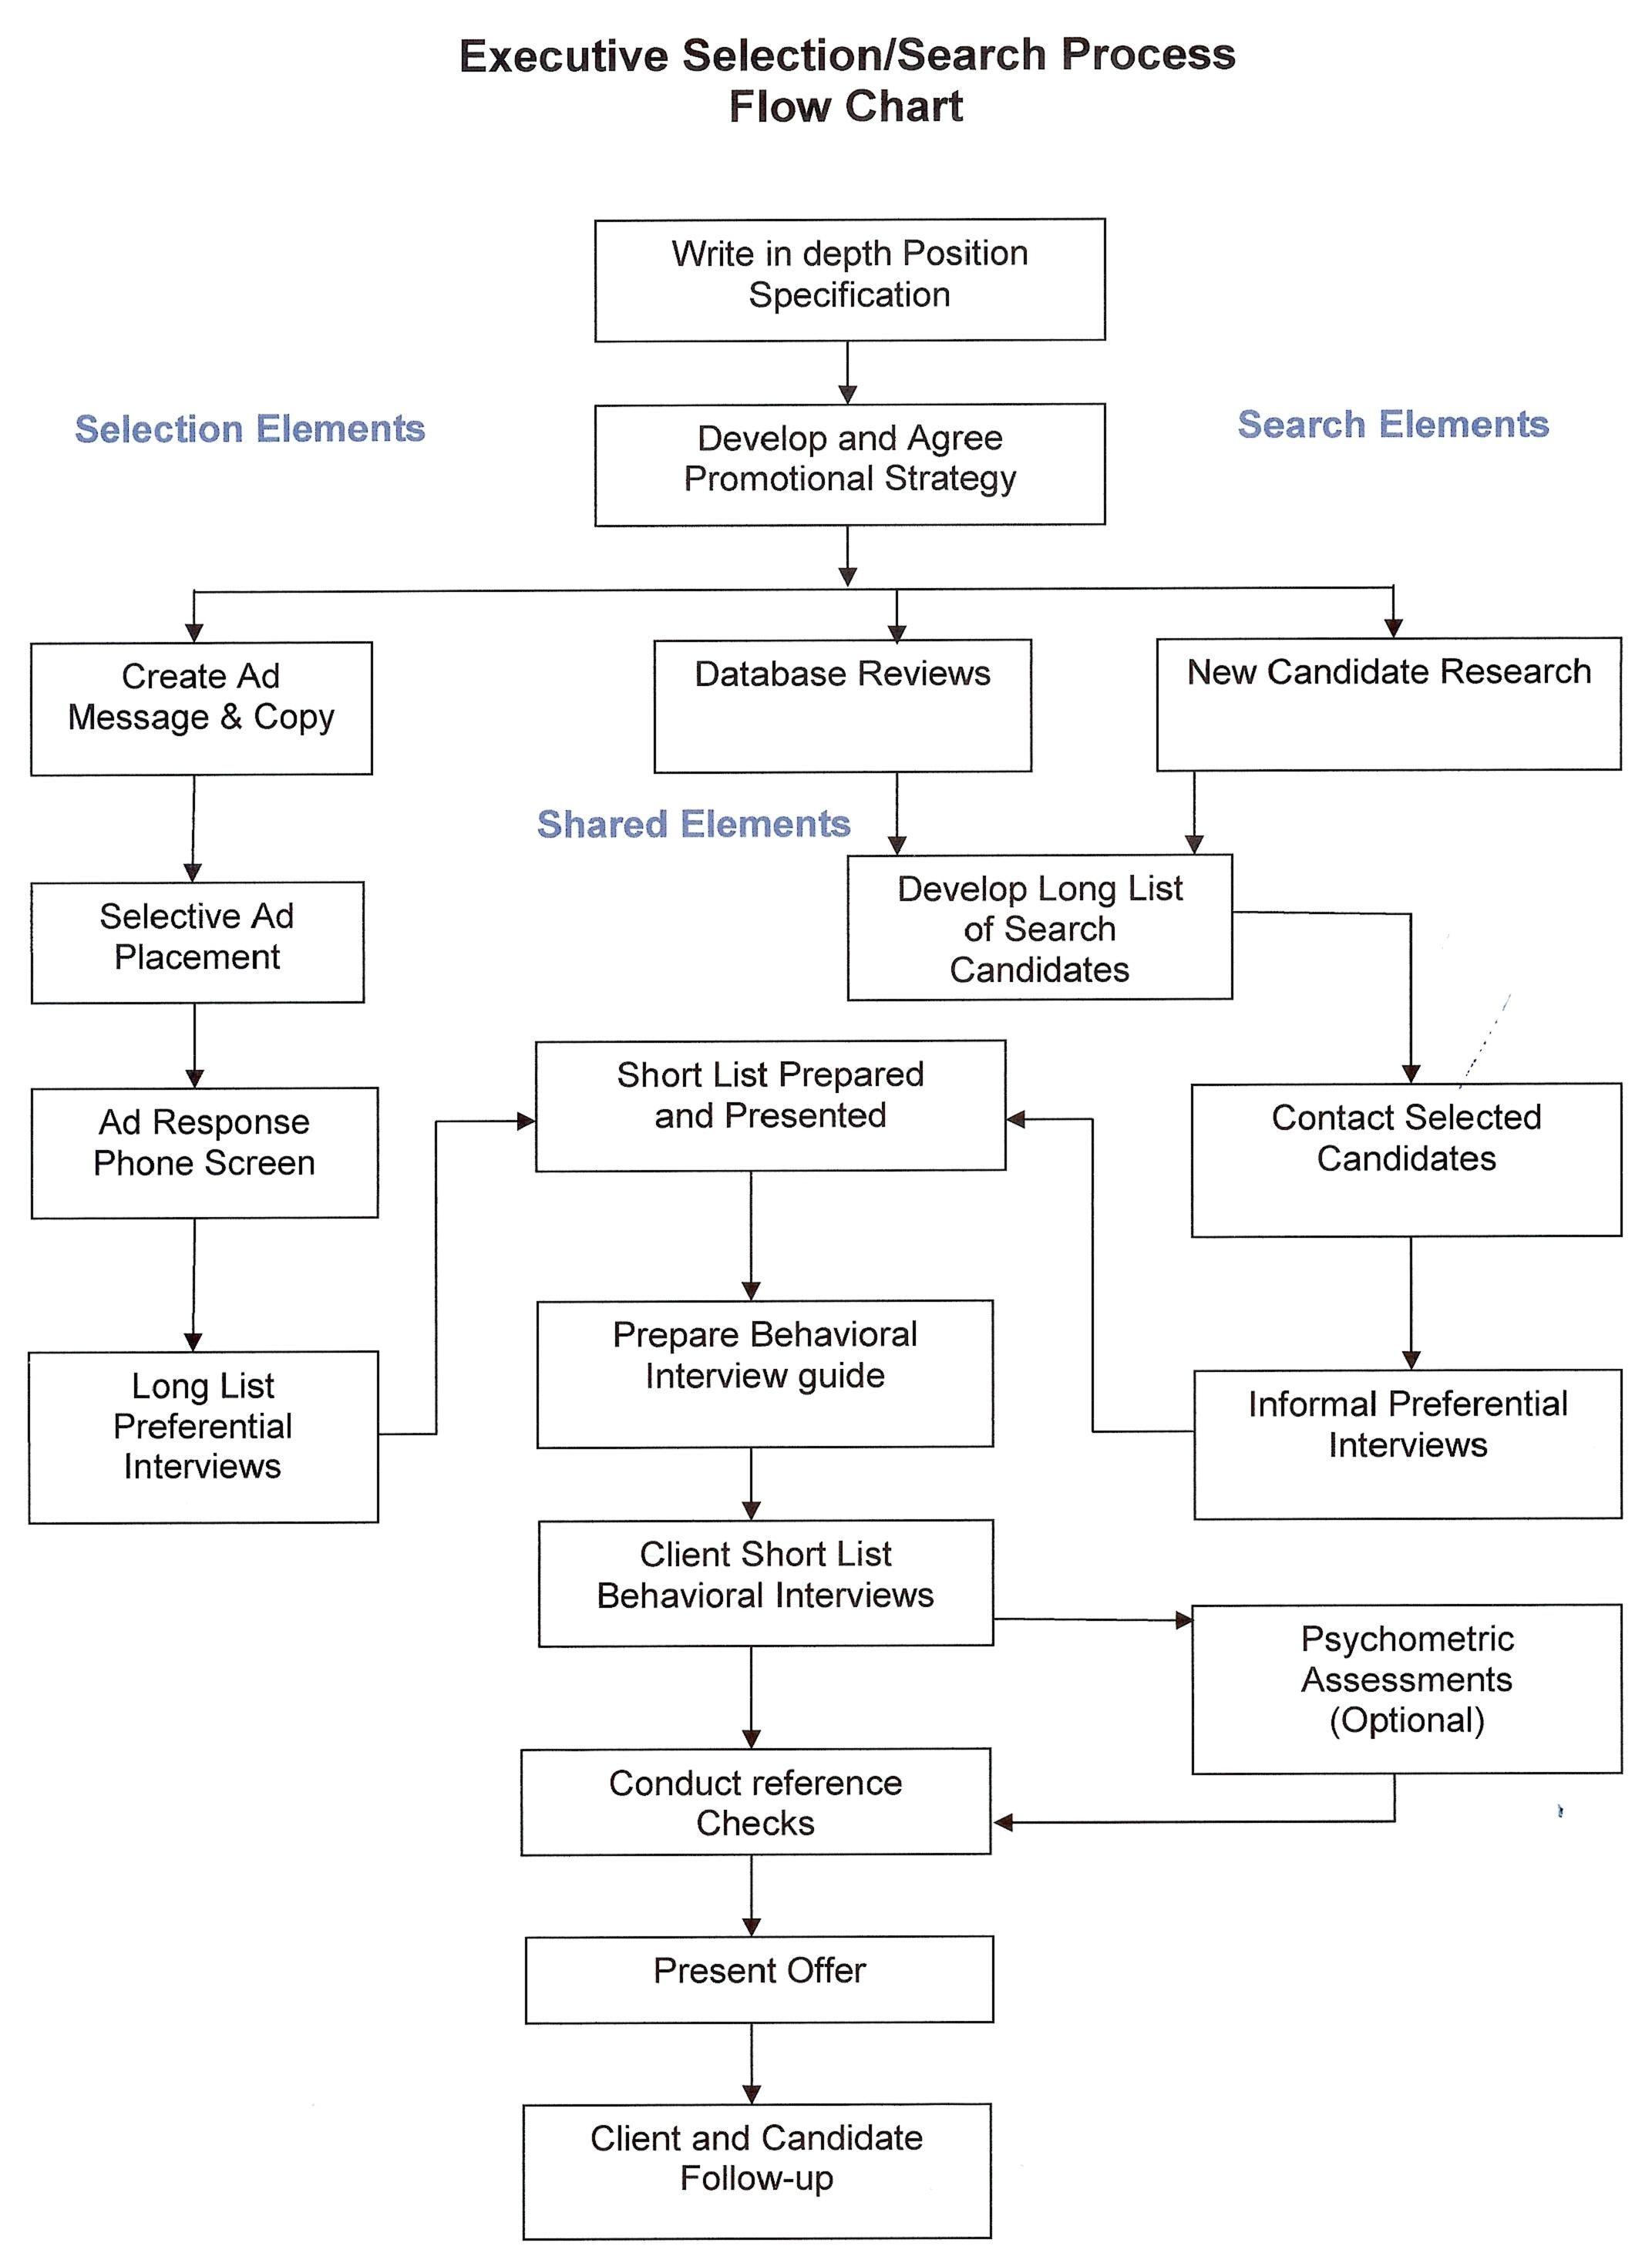 Cool Executive Search And Headhunting Process For Recruitment